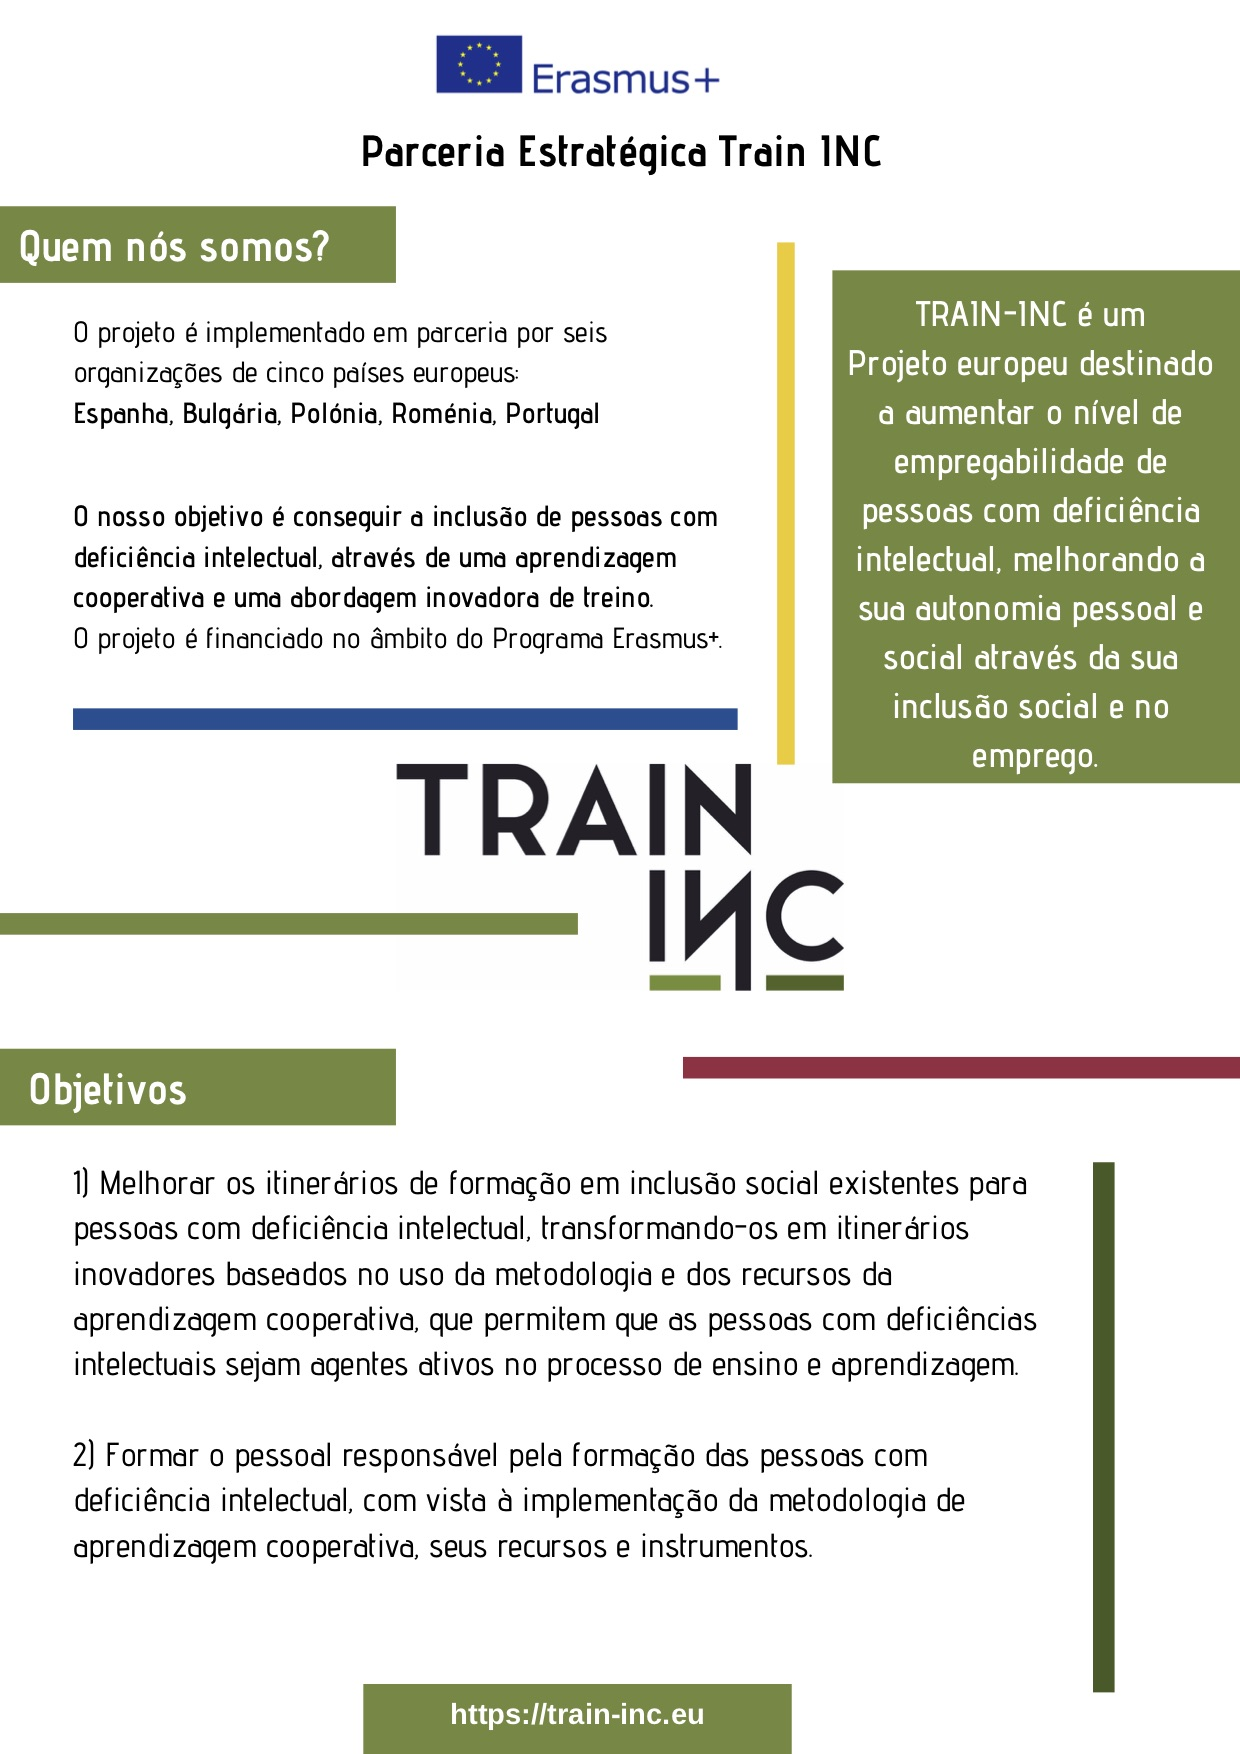 TRAIN-INC | ERASMUS +